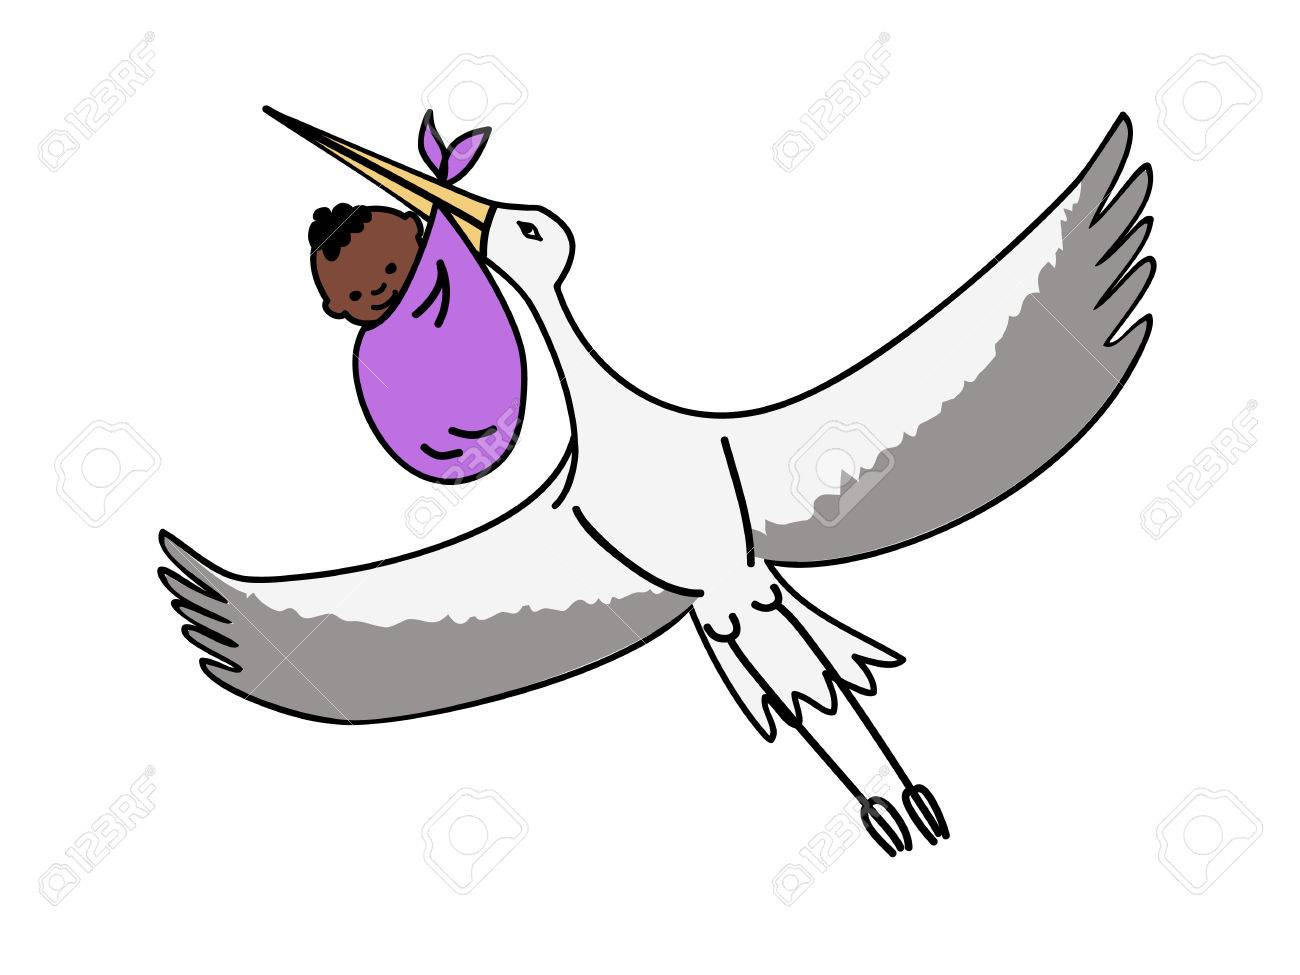 Baby Shower Stork Clipart ~ A flying stork carrying a bundle with a newborn black baby royalty